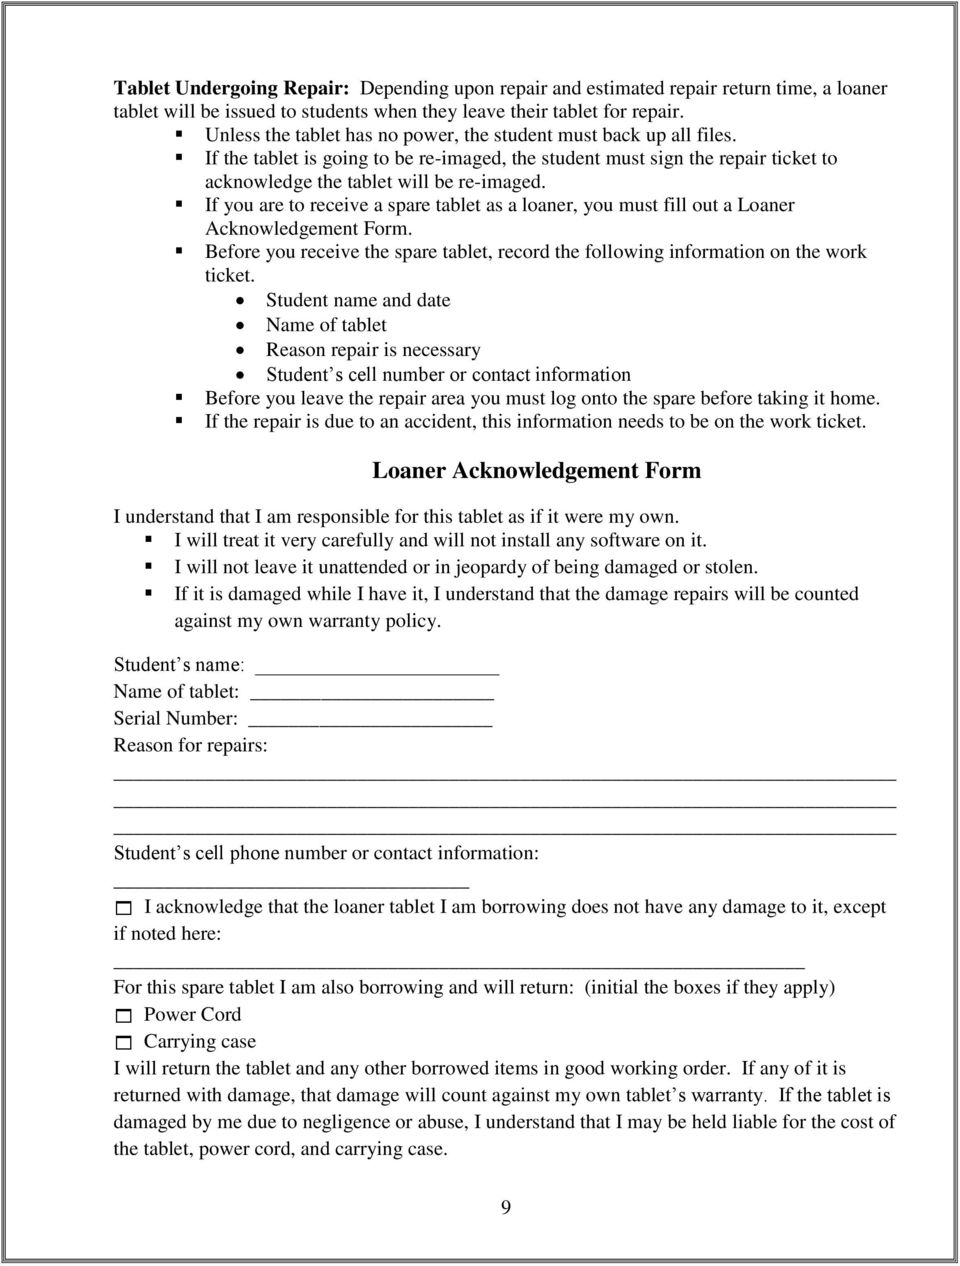 If you are to receive a spare tablet as a loaner, you must fill out a Loaner Acknowledgement Form. Before you receive the spare tablet, record the following information on the work ticket.